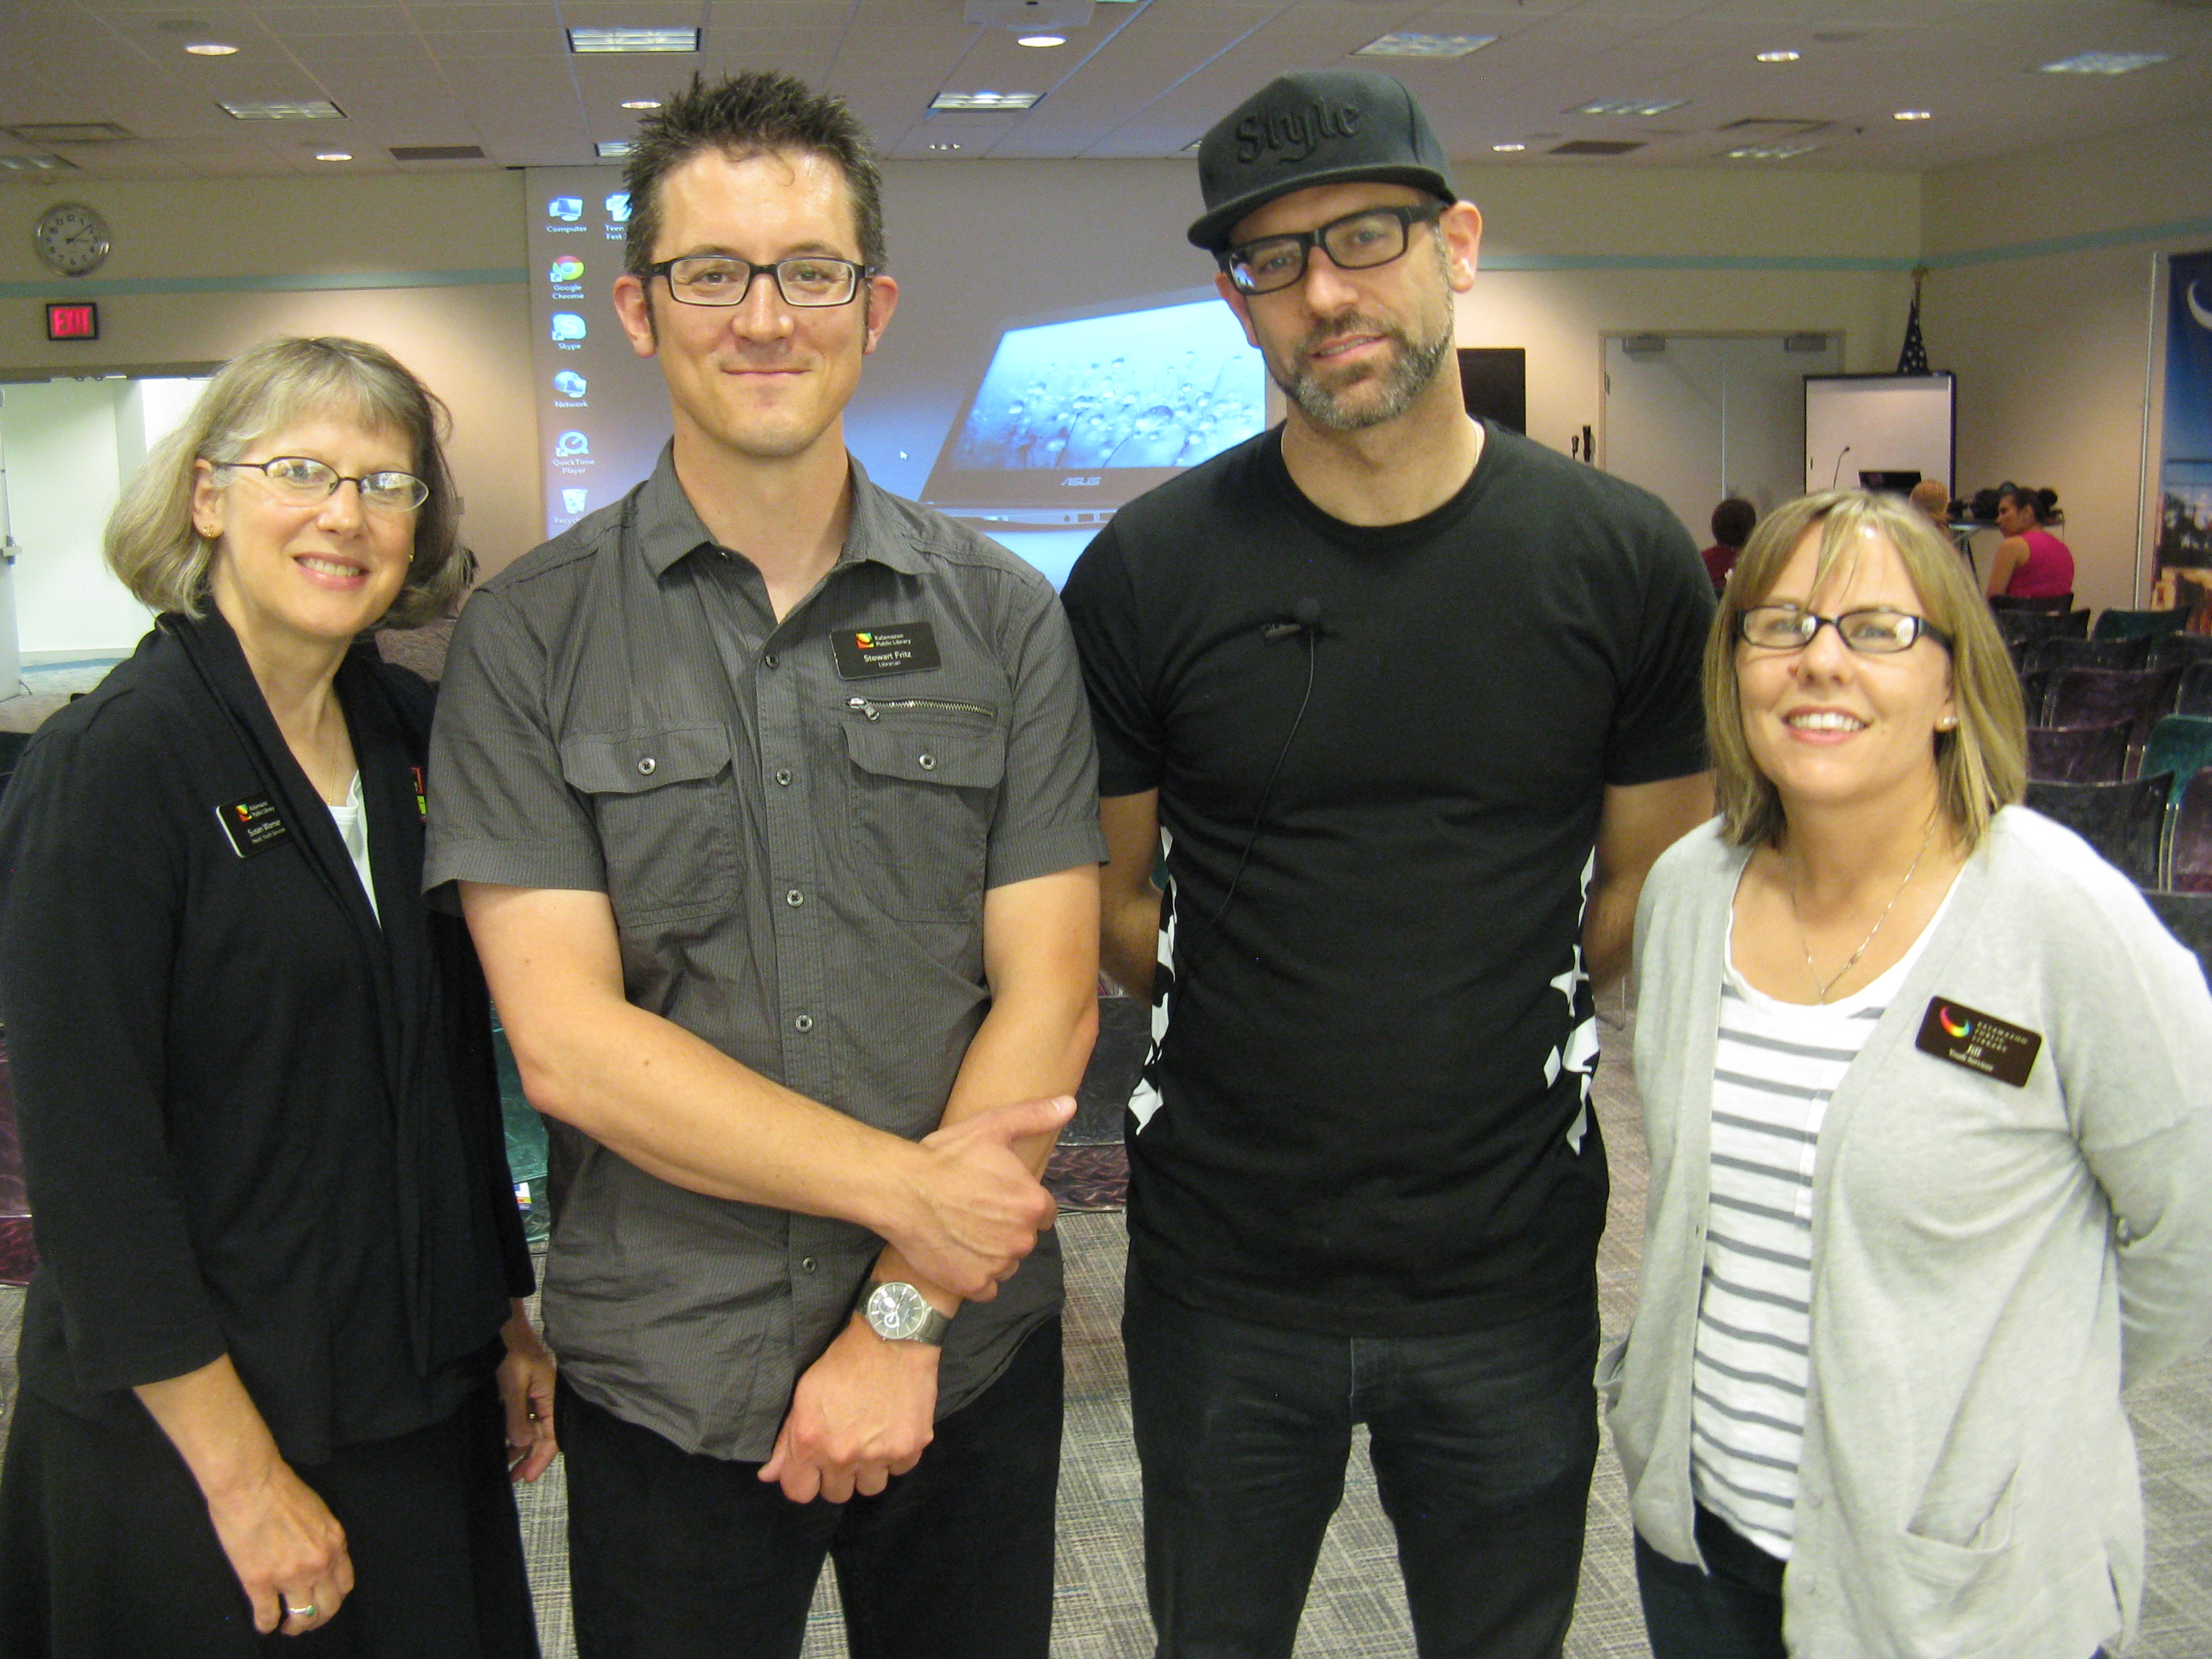 Kevin Coval (with cap) at the [[Kalamazoo Public Library